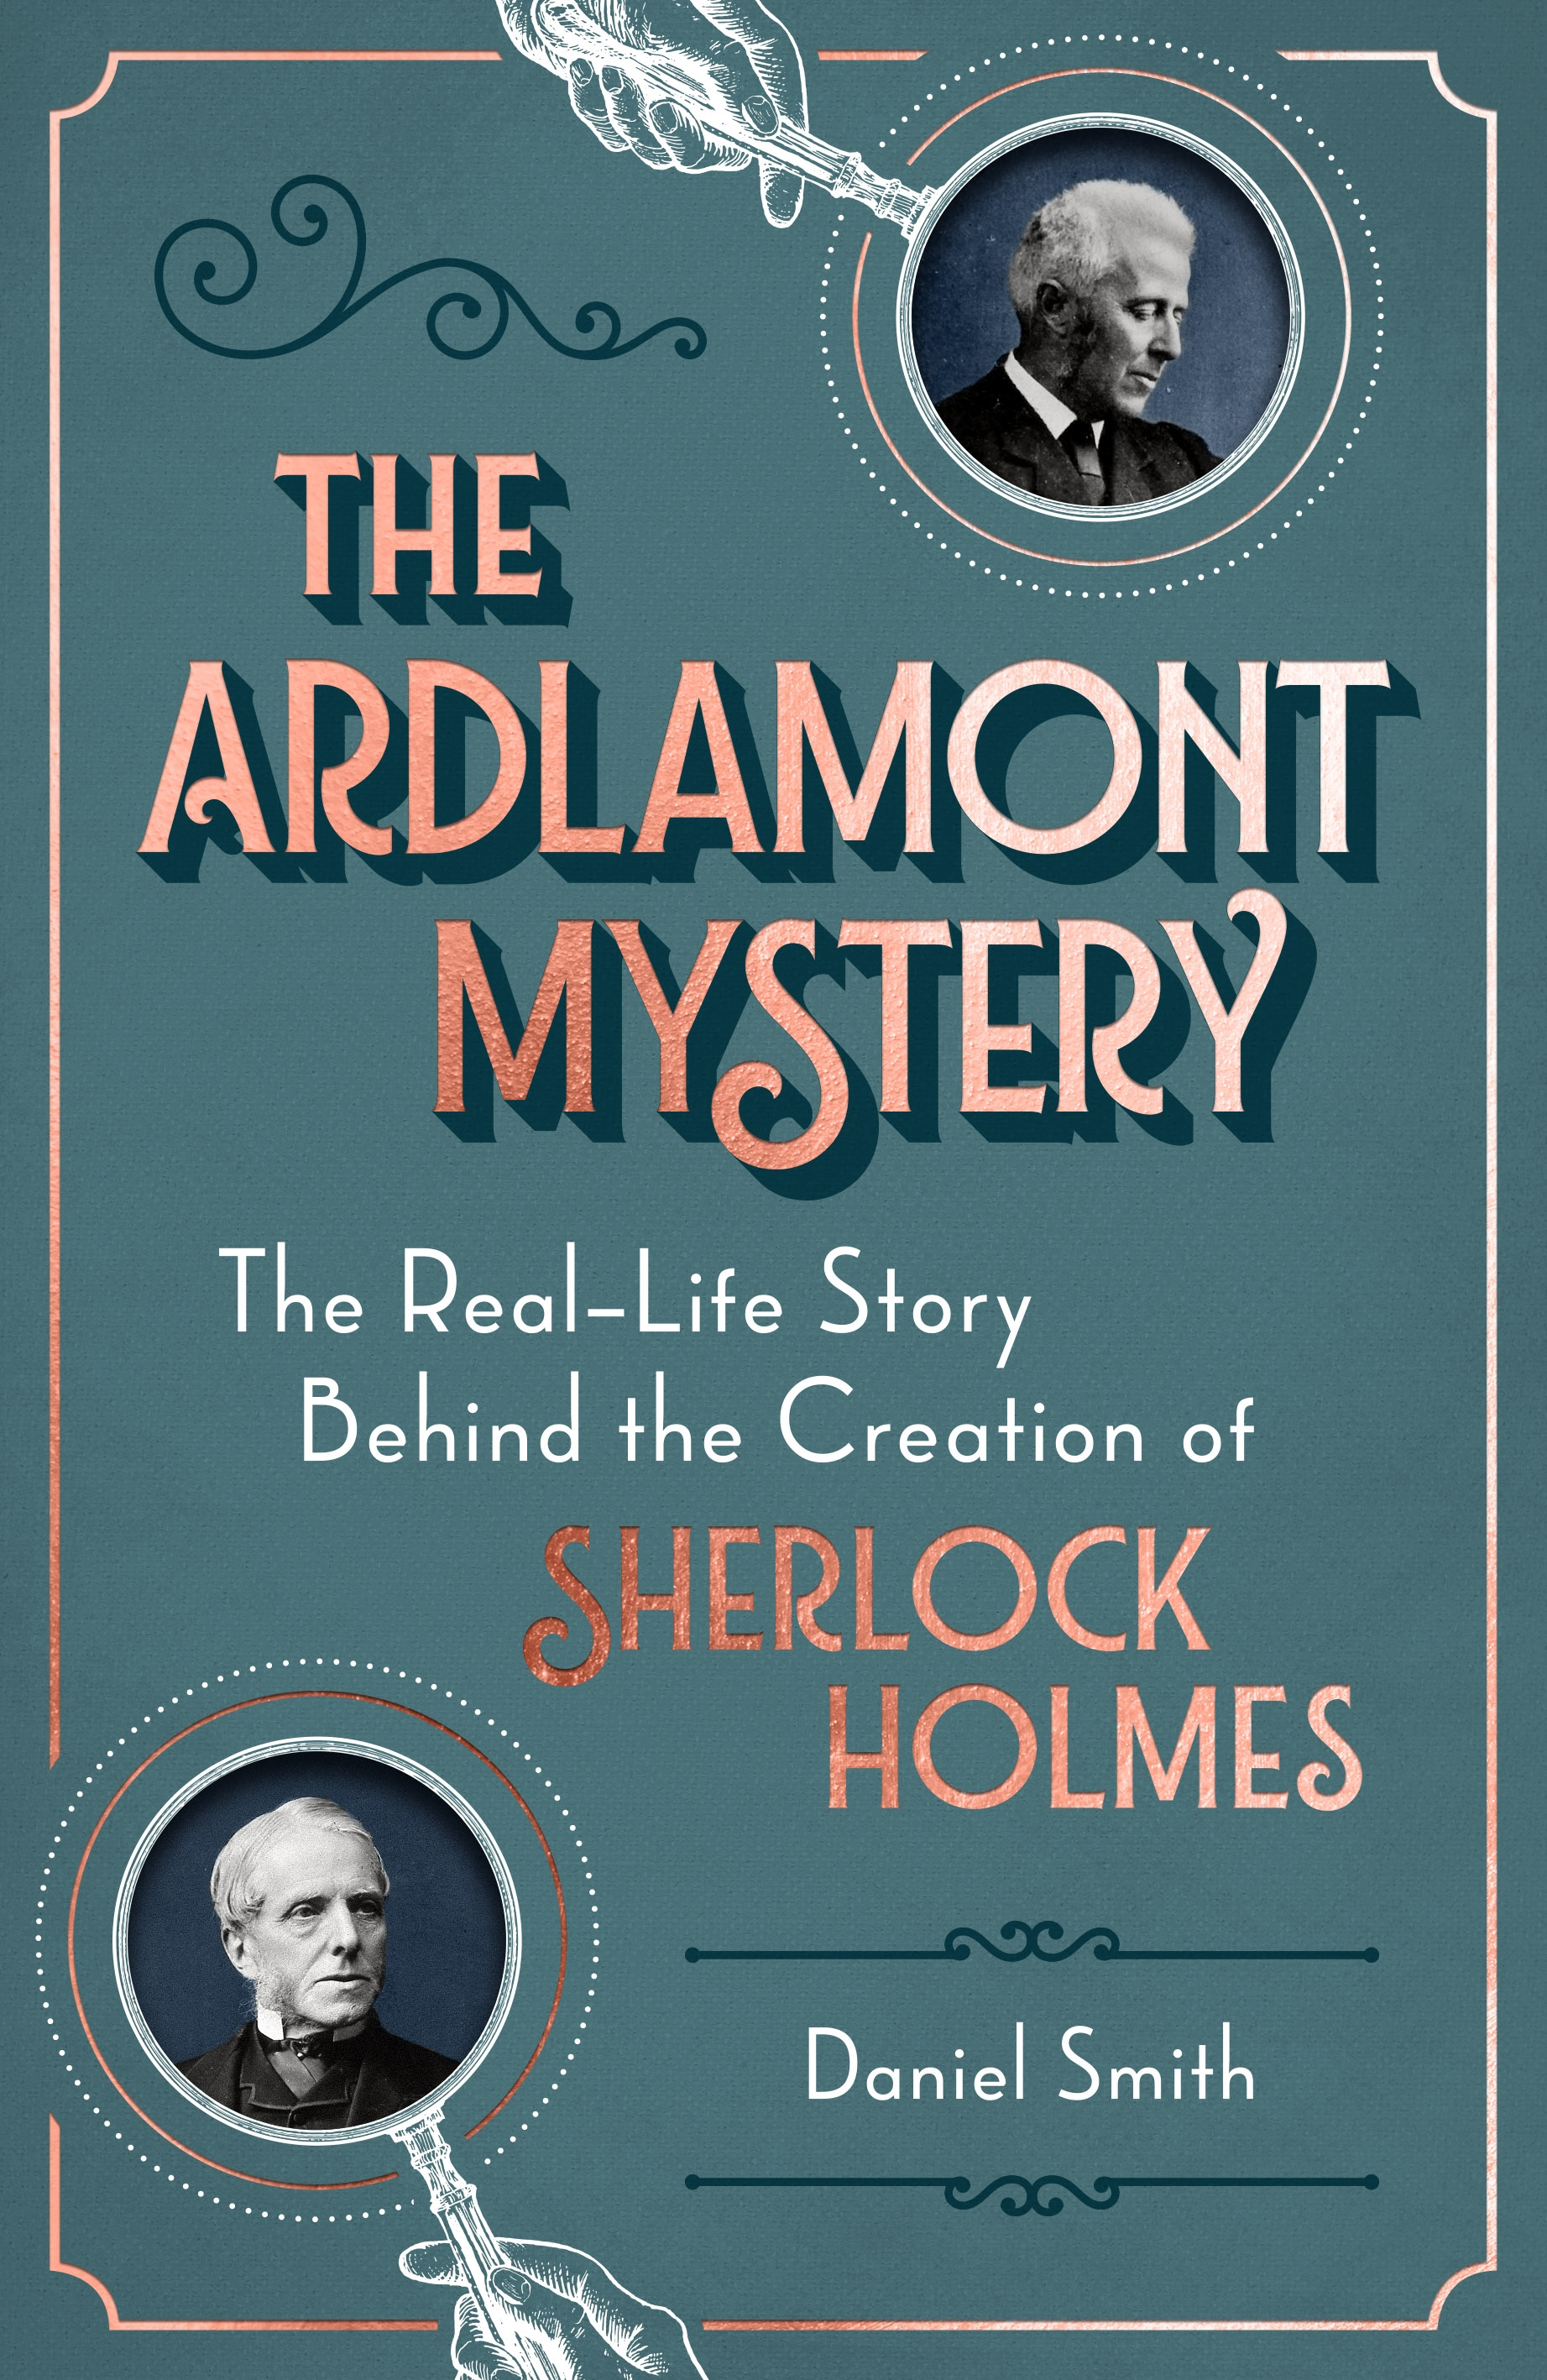 Sherlock Holmes and the Ardlamont Mystery: Daniel Smith talks to Crime Time